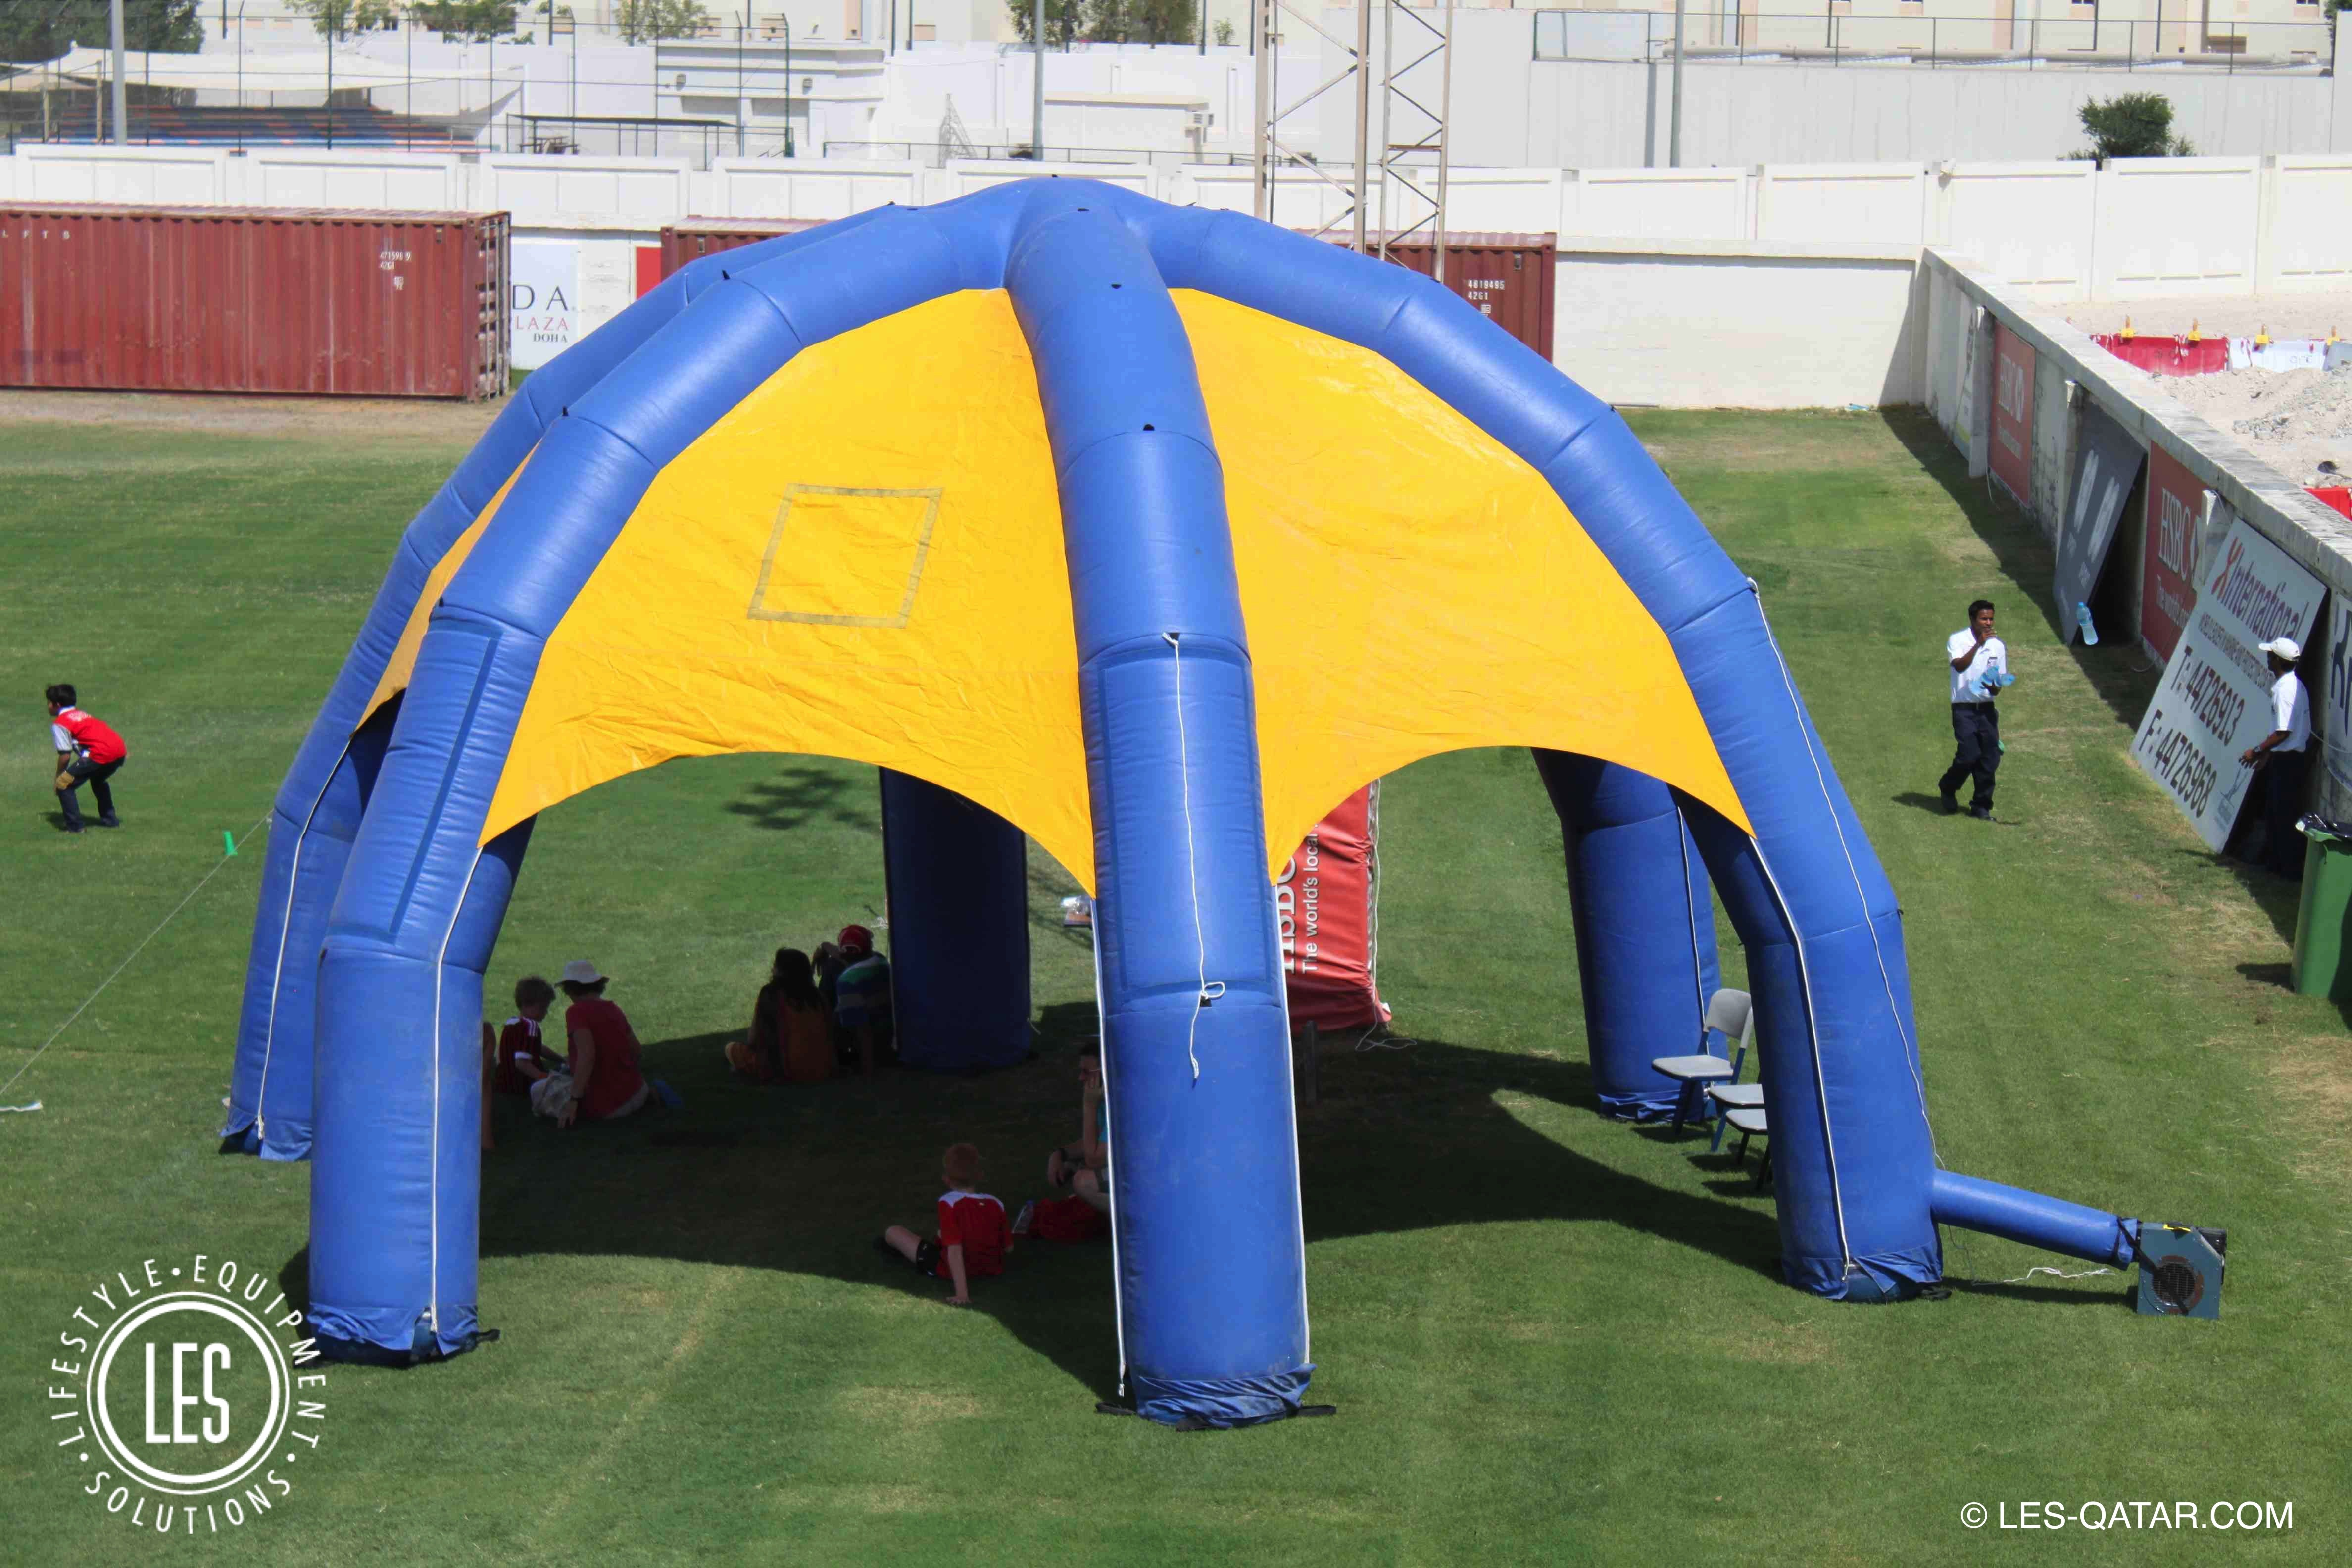 610_LES_Inflatable Shade Tent Big_1 (1)